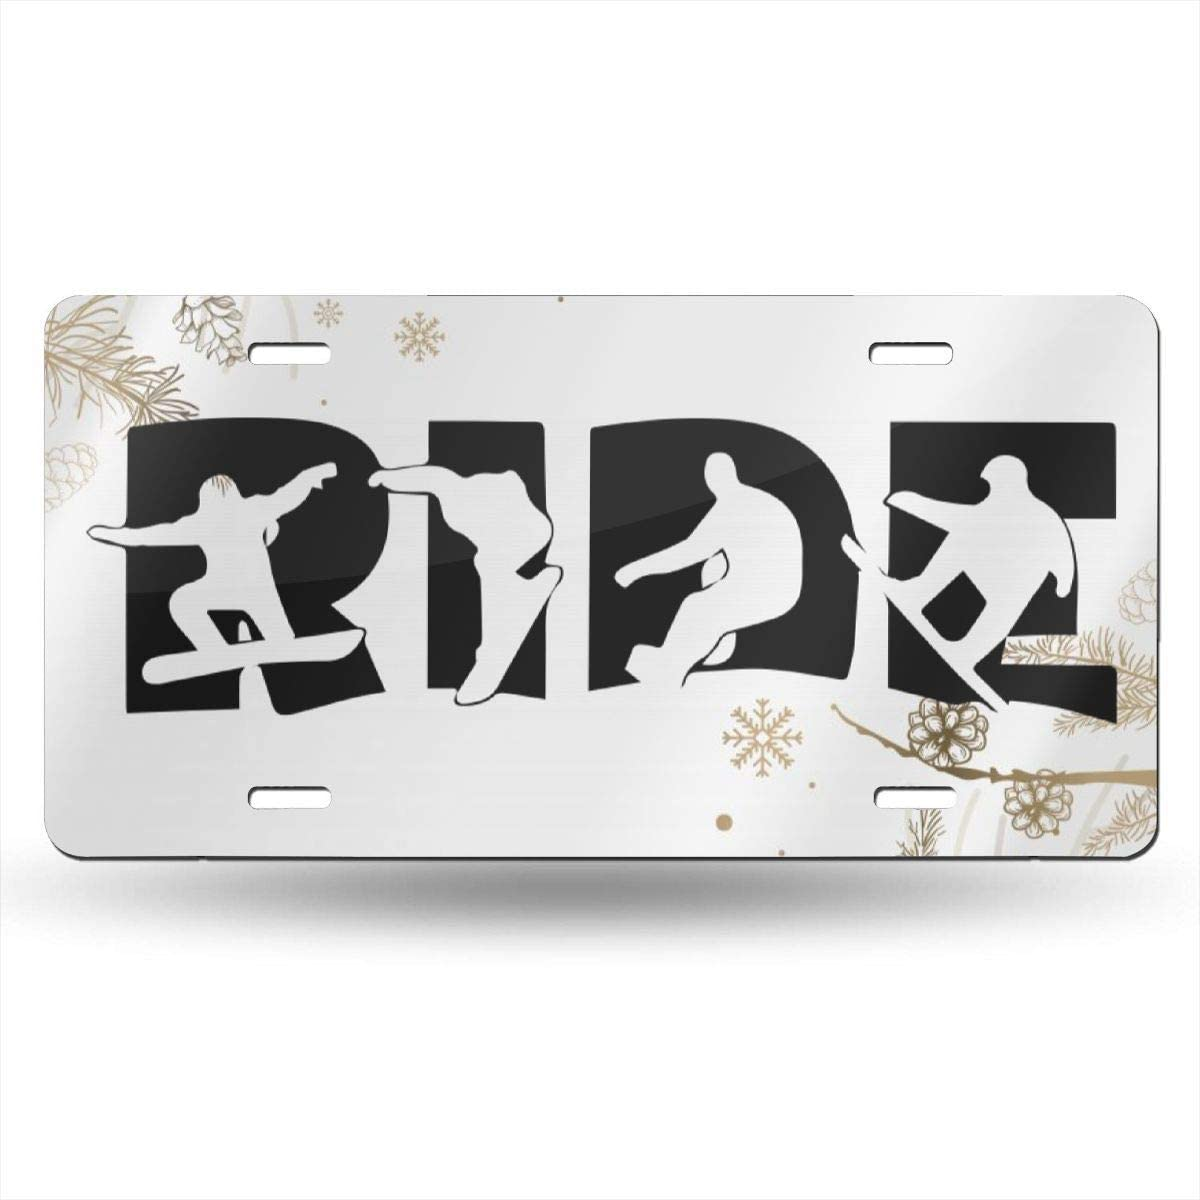 Customized Decorative Front Car Tag Sign for US Vehicles Ride Snowboard Customizable Novelty License Plates Aluminum